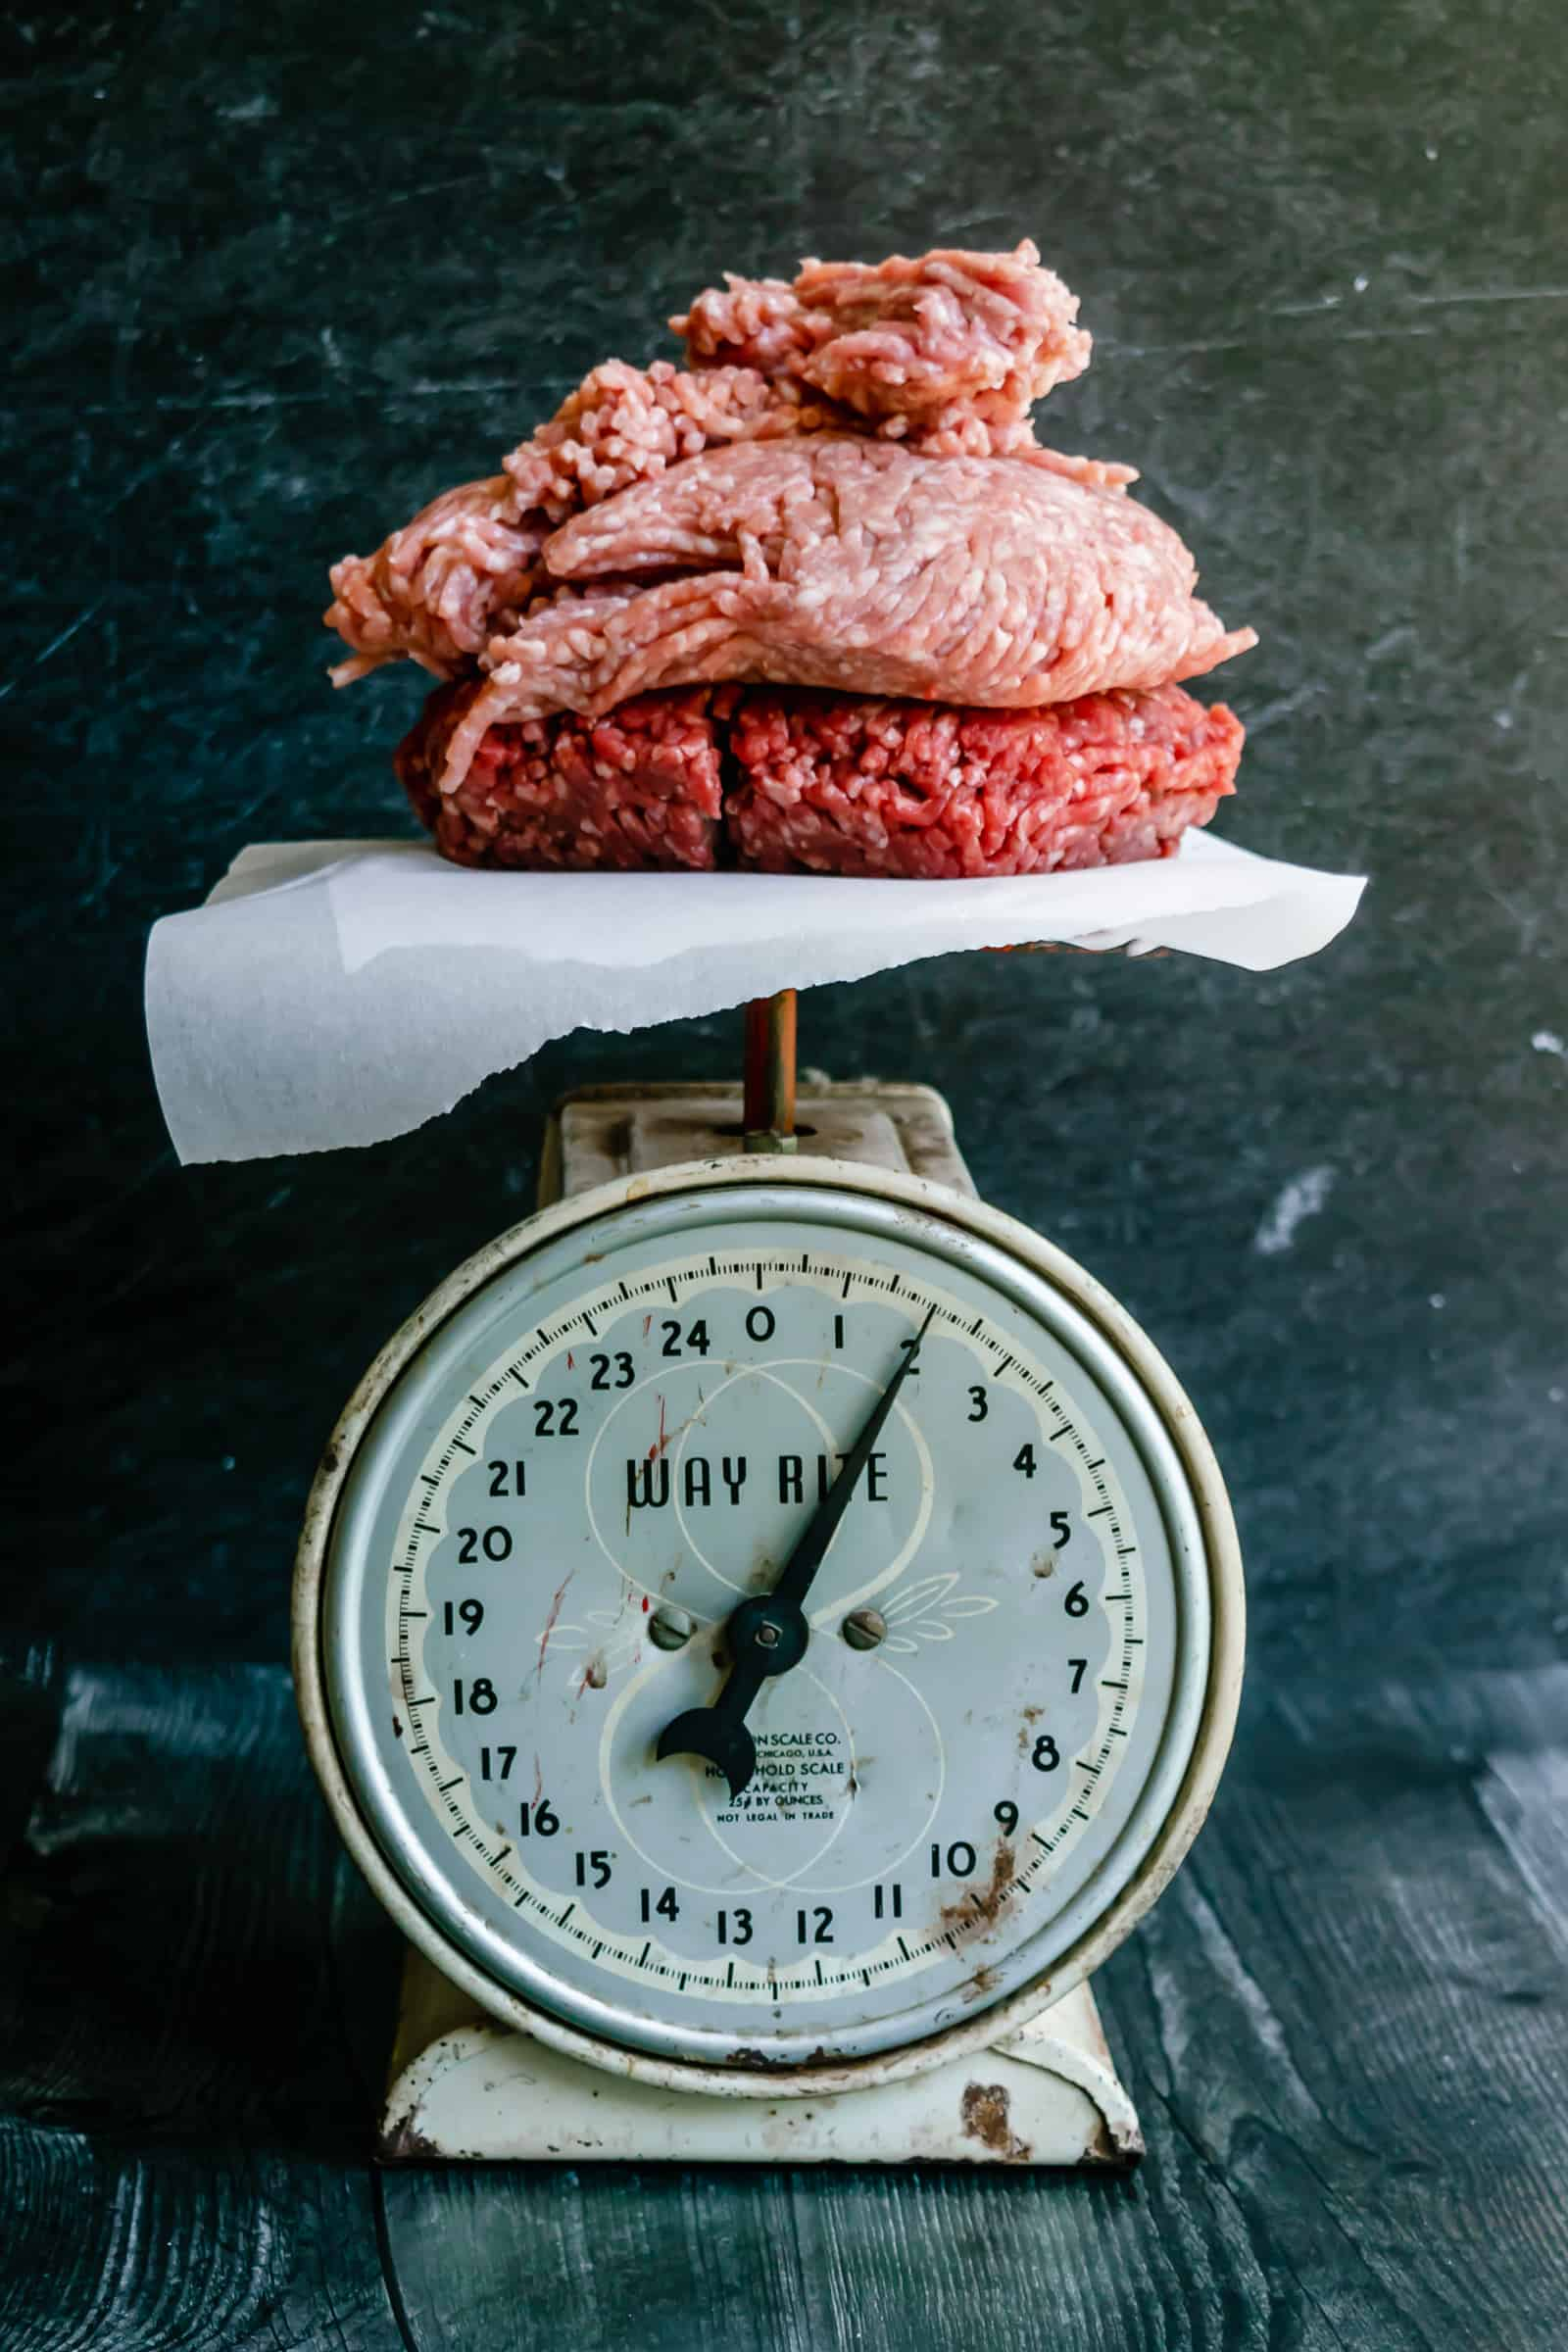 old fashioned scale set on a dark background with homemade meatball ingredients like ground beef and pork